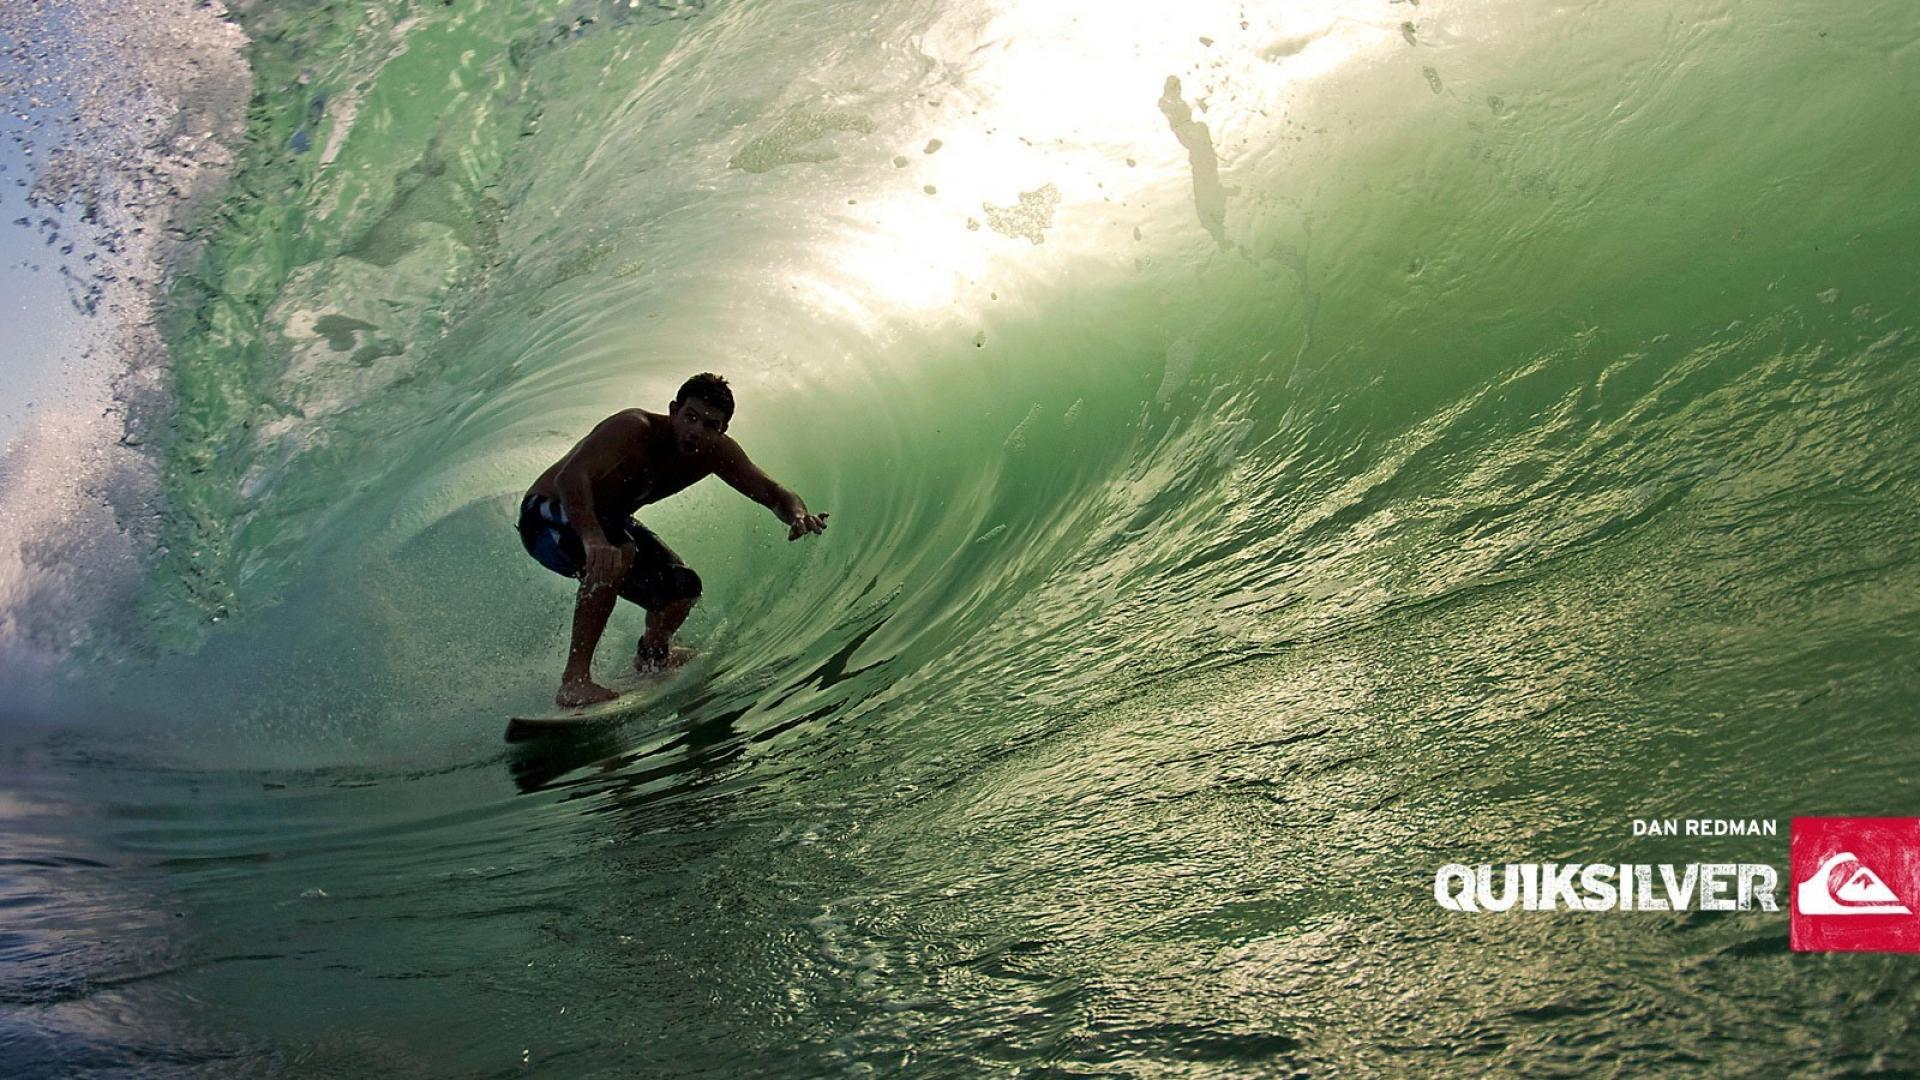 Quiksilver Surf Wallpapers - Wallpaper CaveQuiksilver Wallpaper